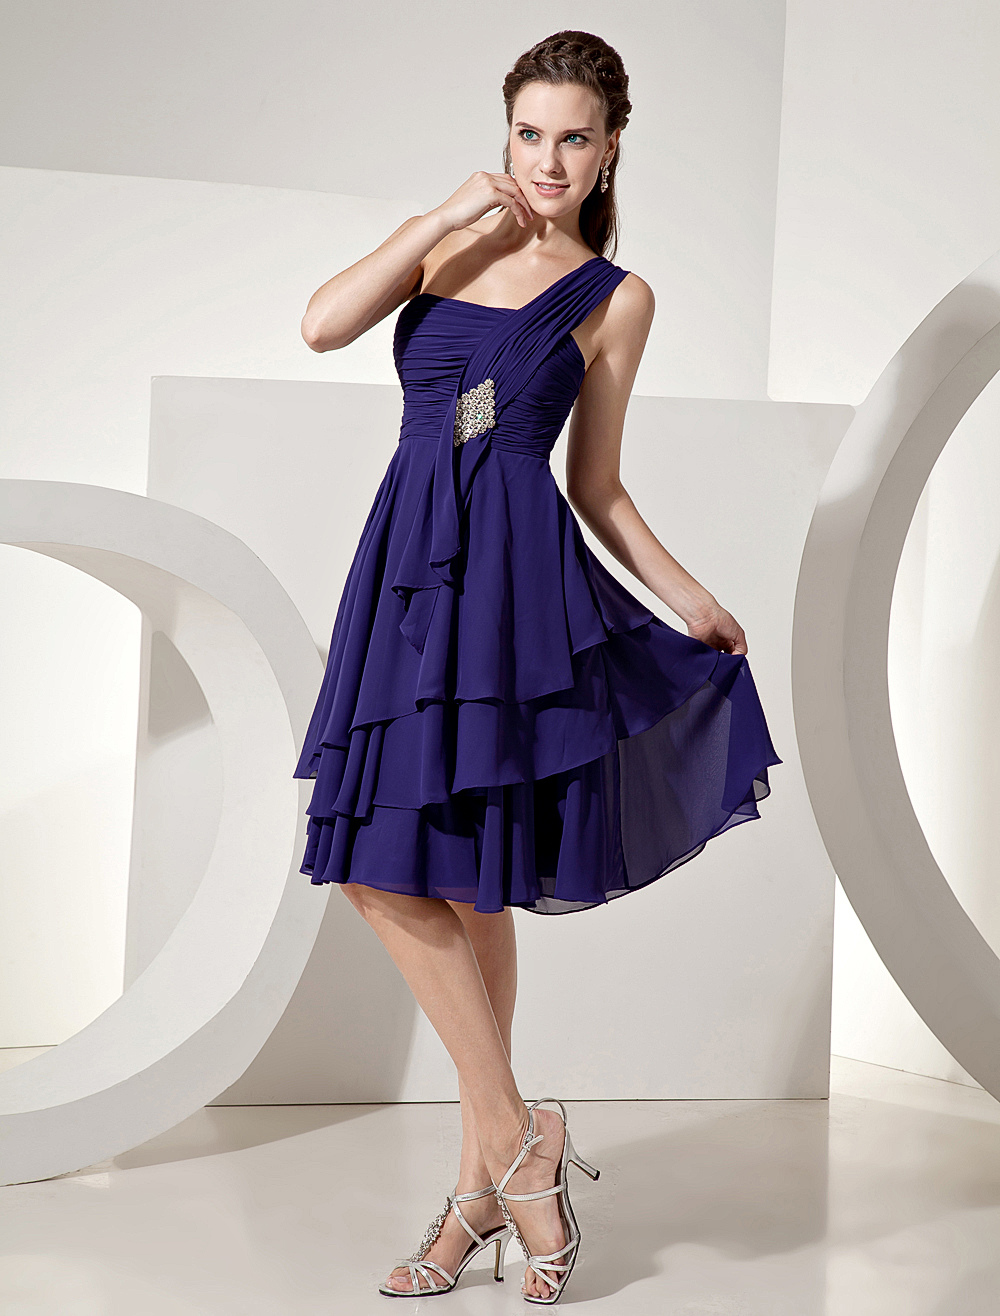 Chiffon Bridesmaid Dress Royal Purple Knee Length One Shoulder Tiered Prom Dress